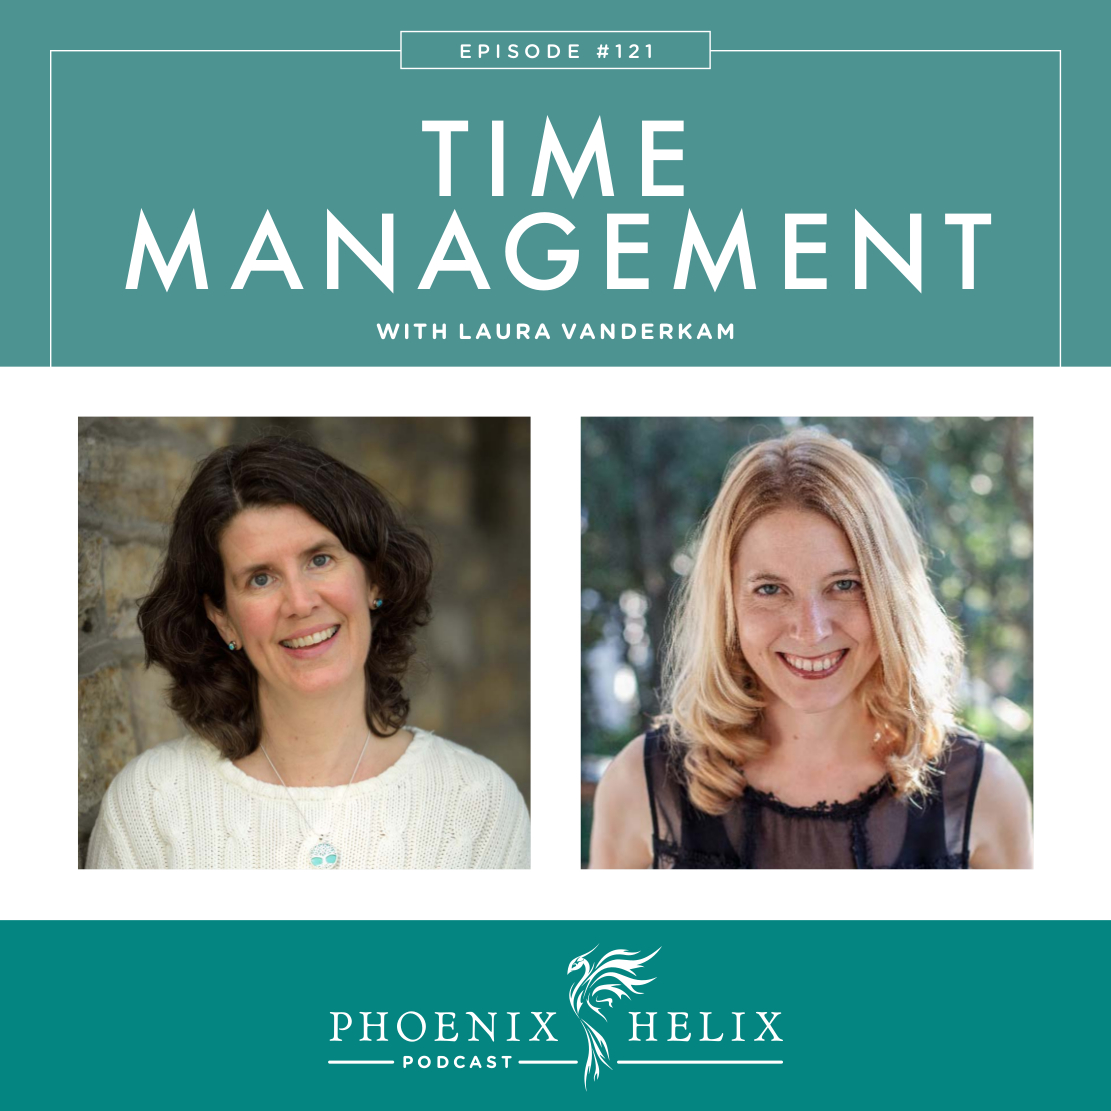 Time Management with Laura Vanderkam | Phoenix Helix Podcast